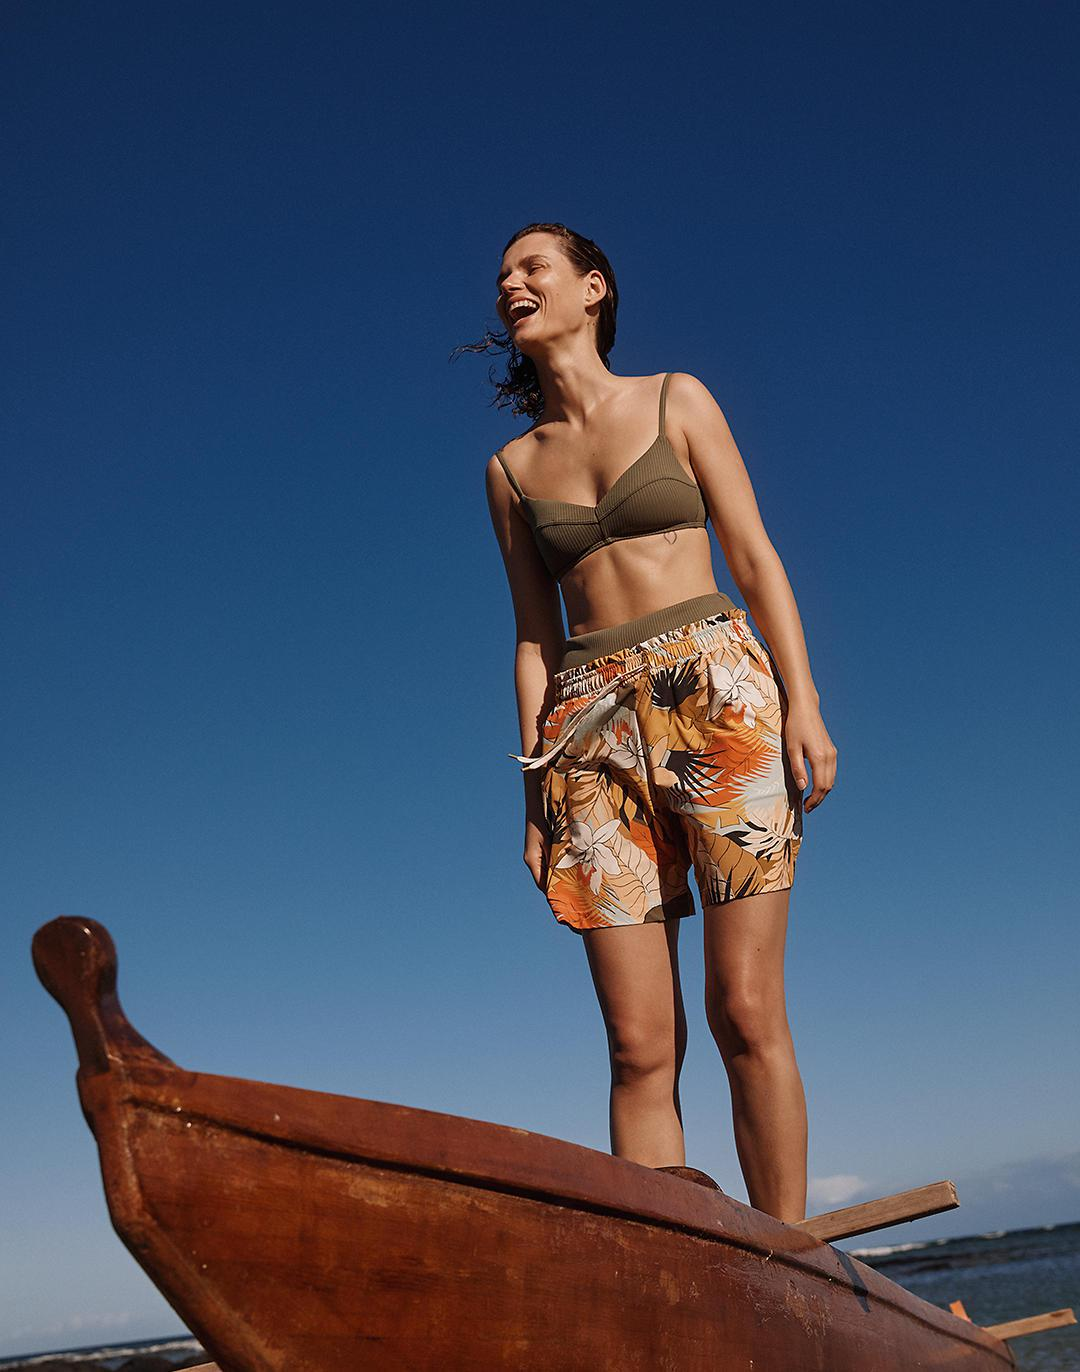 Madewell Second Wave Board Shorts in Tropical Vacation 3